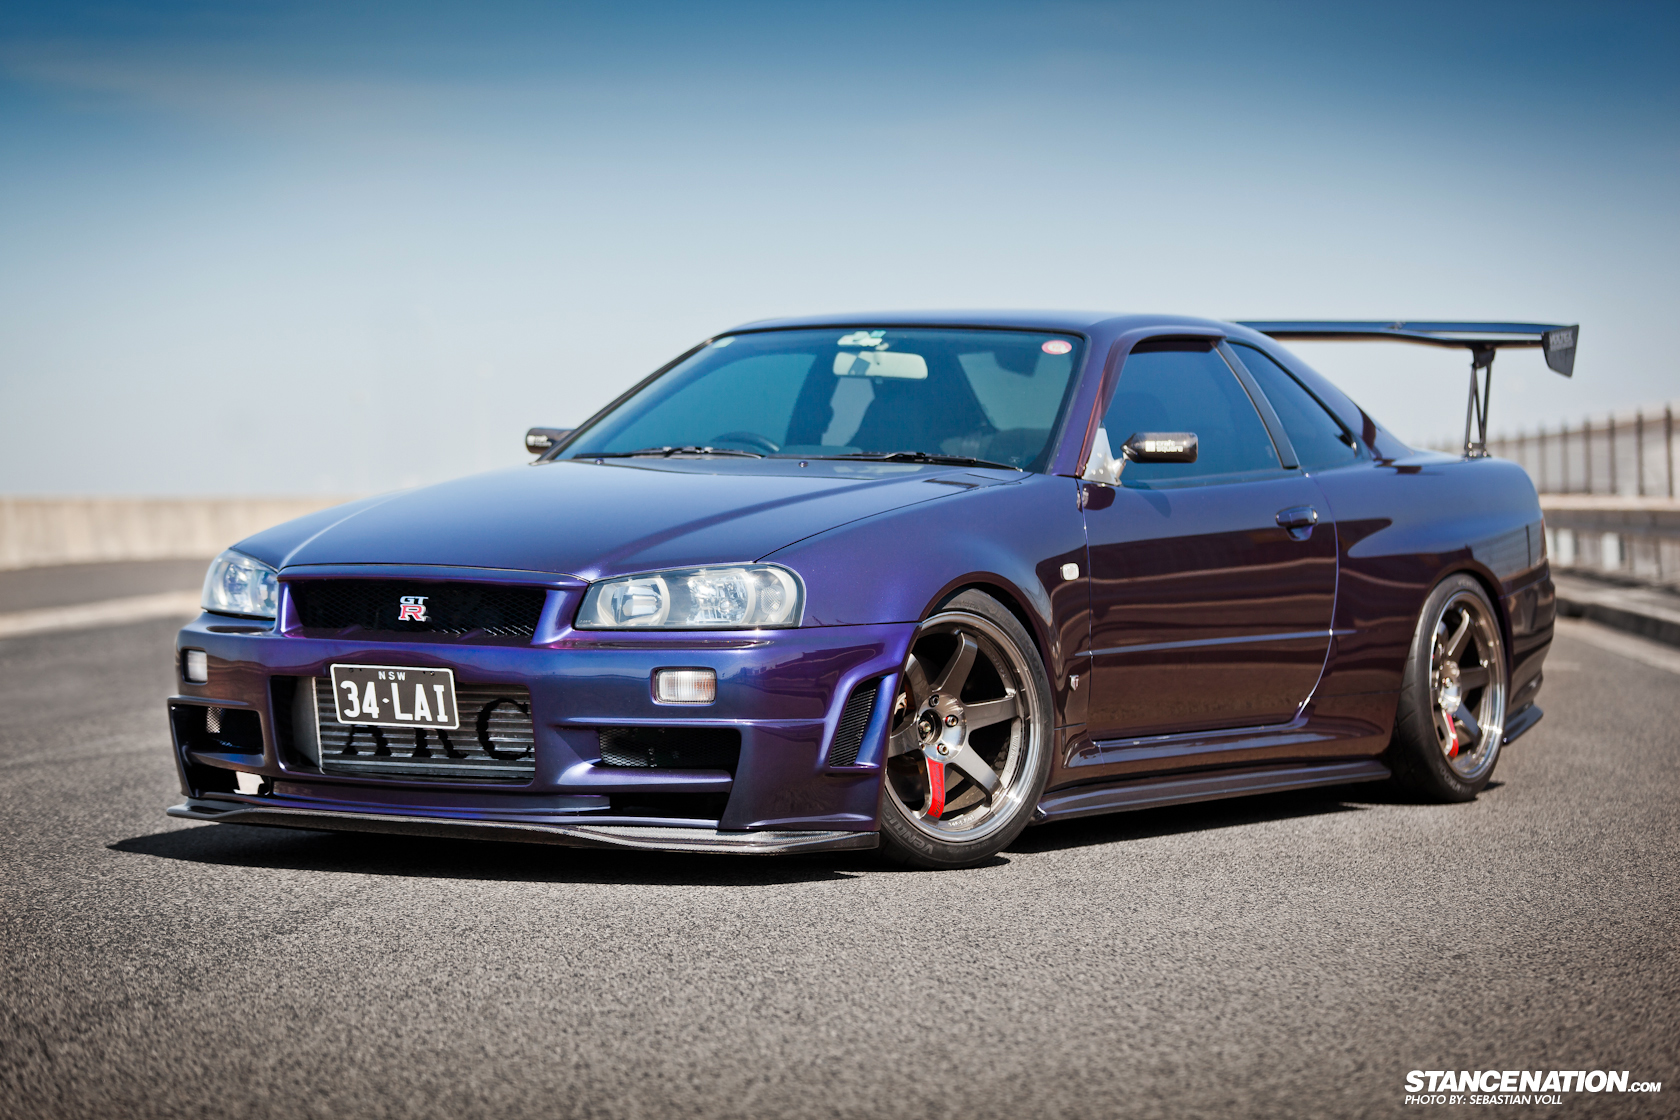 Barely Legal // David's Nissan Skyline R34 GTR ...